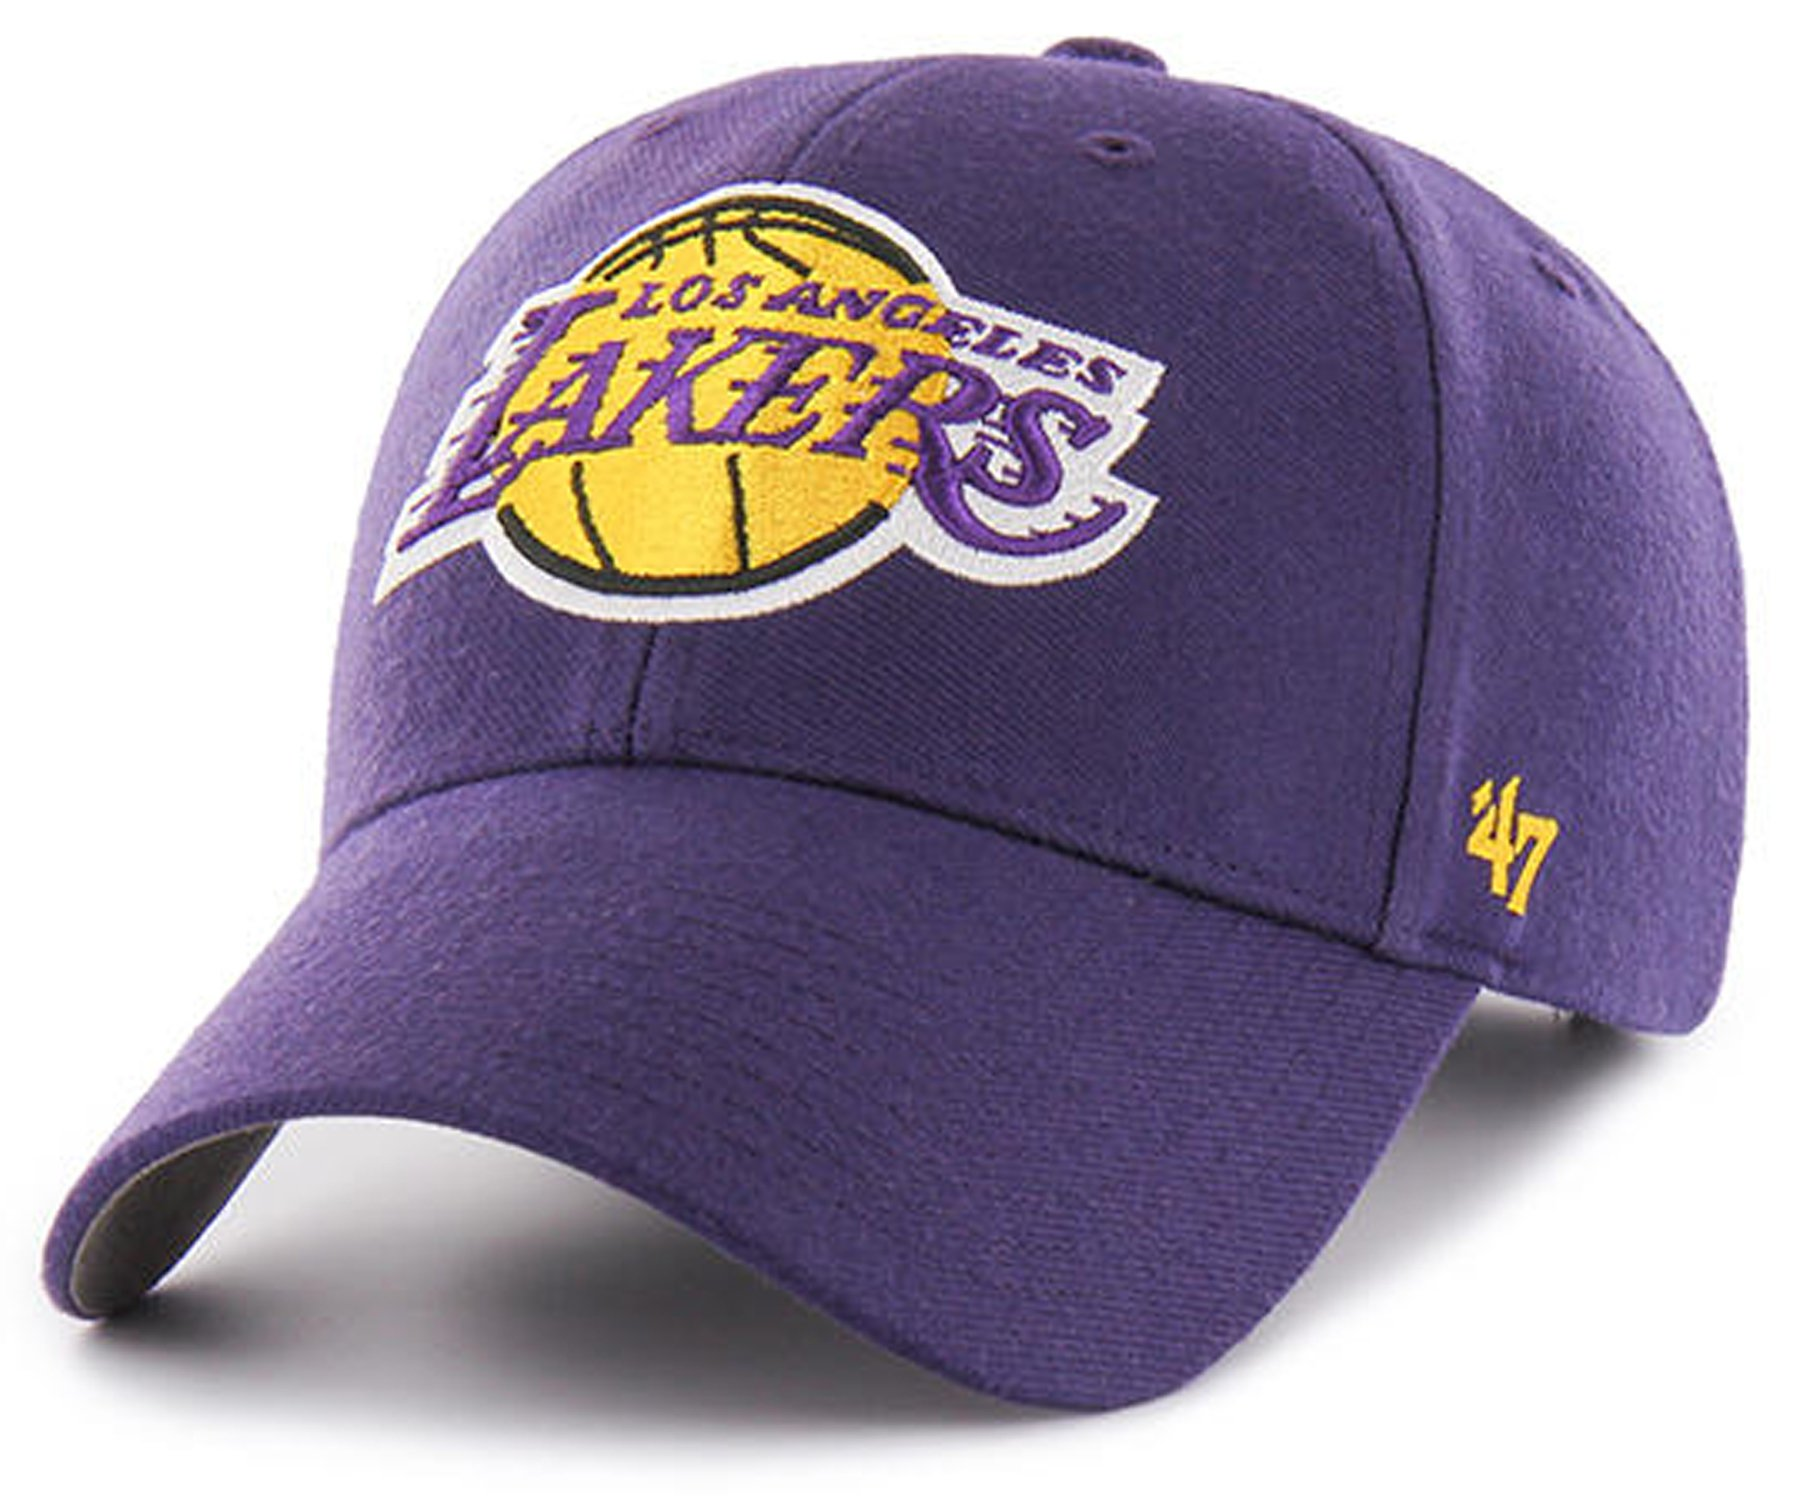 '47 NBA Los Angeles Lakers Clean up Adjustable Hat, Black, One Size (Purple, One Size)